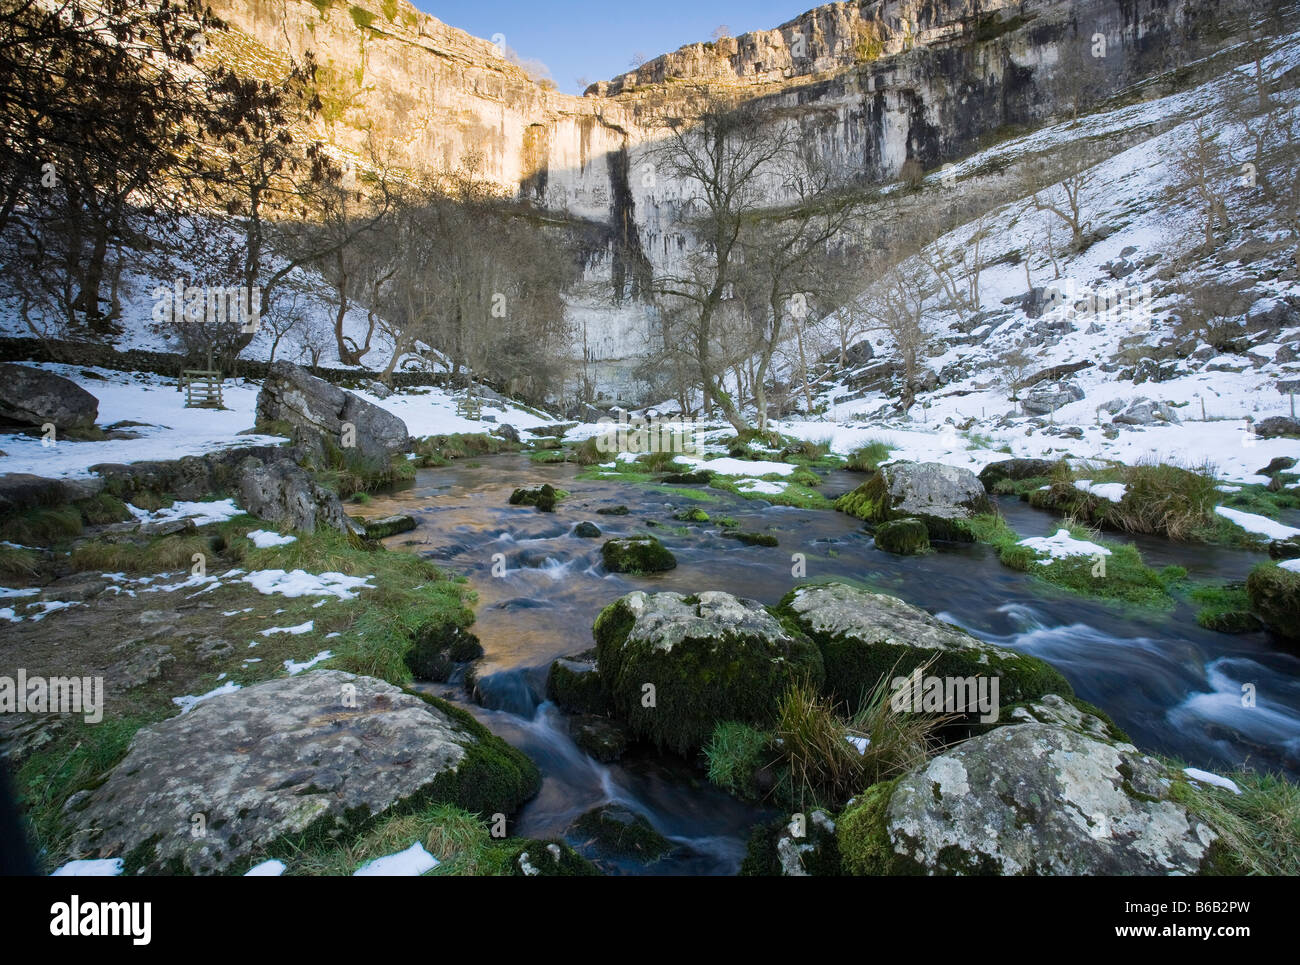 Early Winter Snow Malham Cove Malhamdale Yorkshire Dales - Stock Image